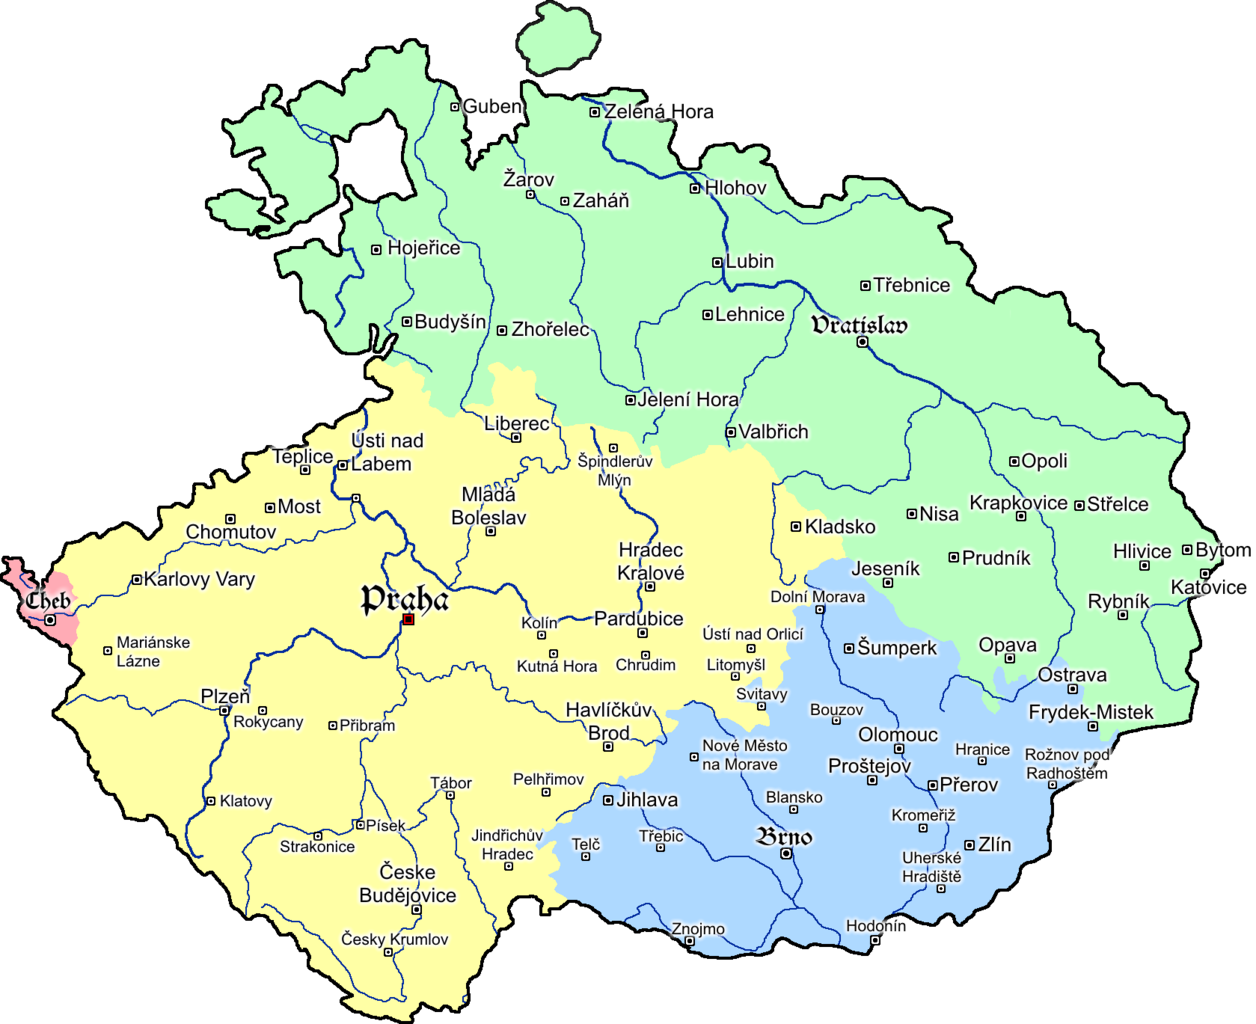 Map Of Bohemia File:Map of Bohemia 1618.png   Wikimedia Commons Map Of Bohemia